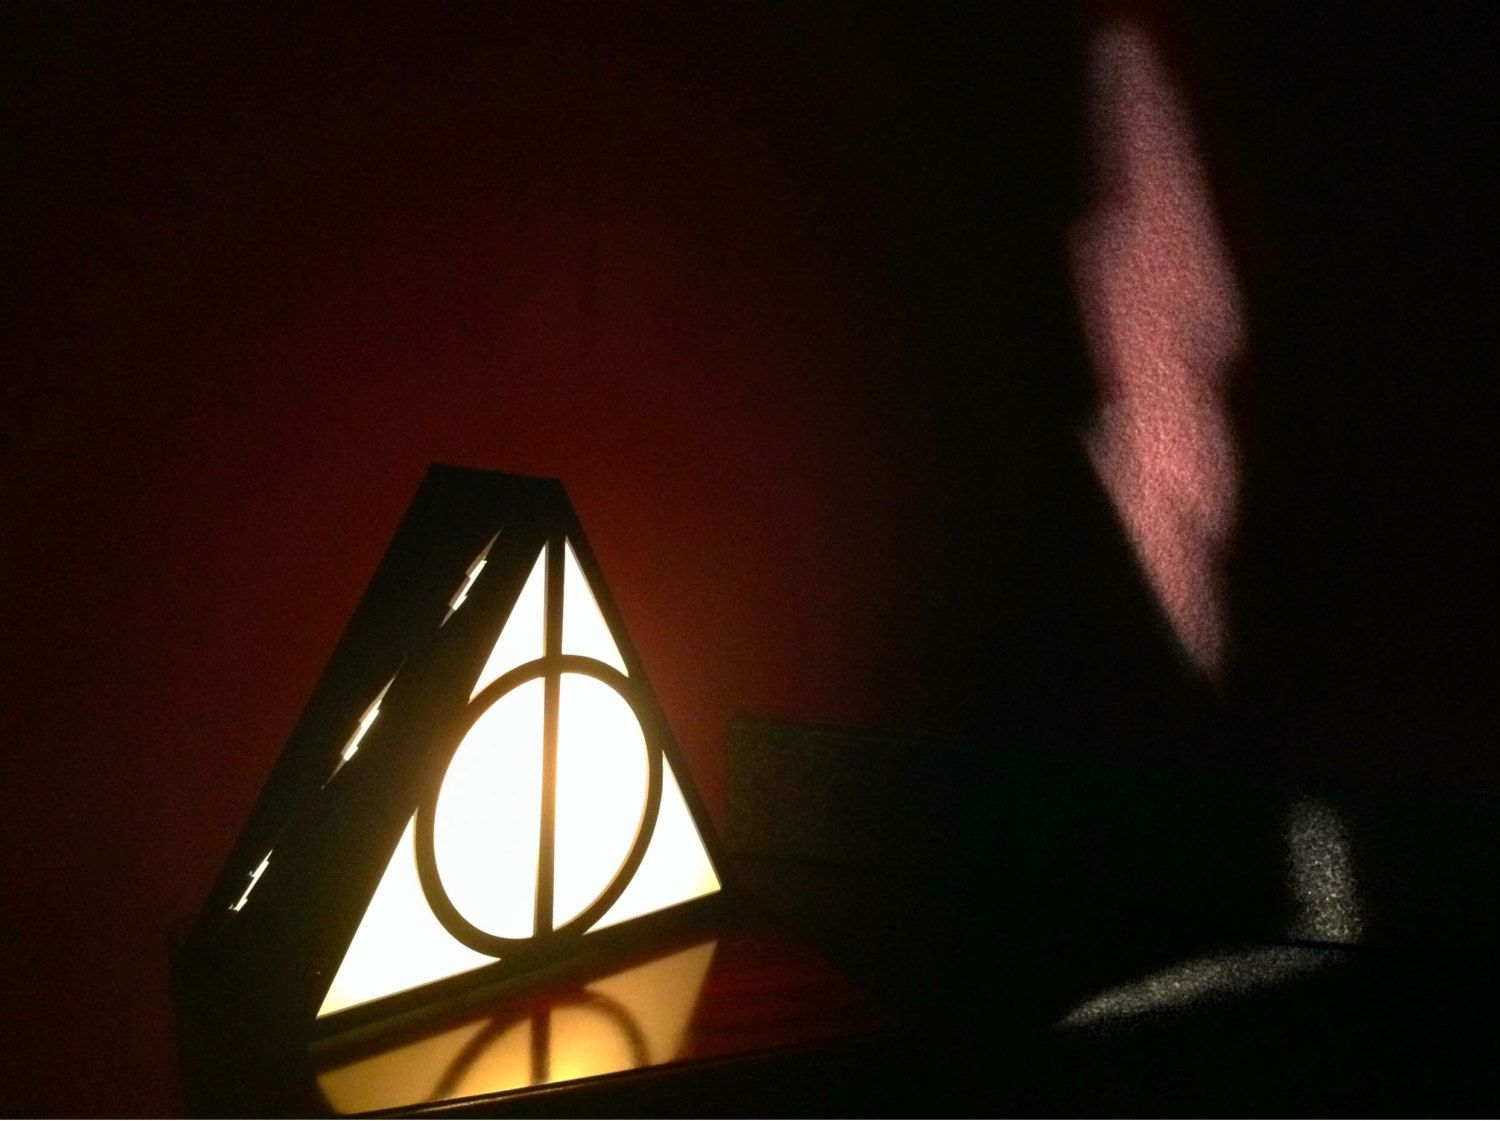 Harry Potter Deathly Hallows Lamp by Plasmatorium on Etsy https://www.etsy.com/listing/189738160/harry-potter-deathly-hallows-lamp